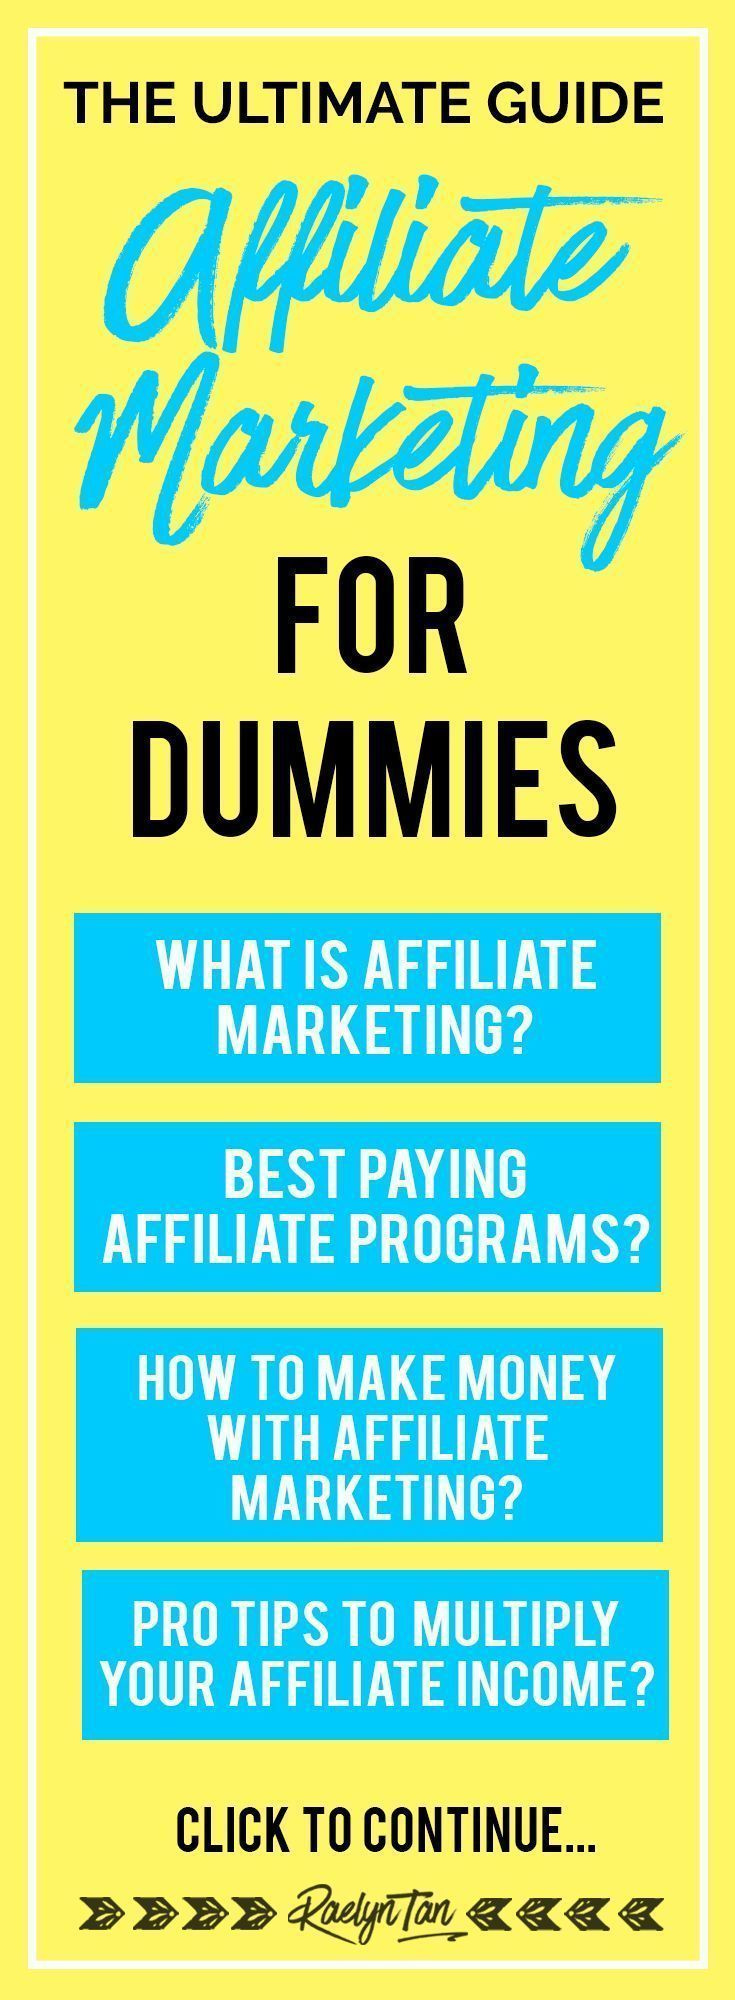 The Ultimate Guide: Affiliate Marketing For Dummies ...